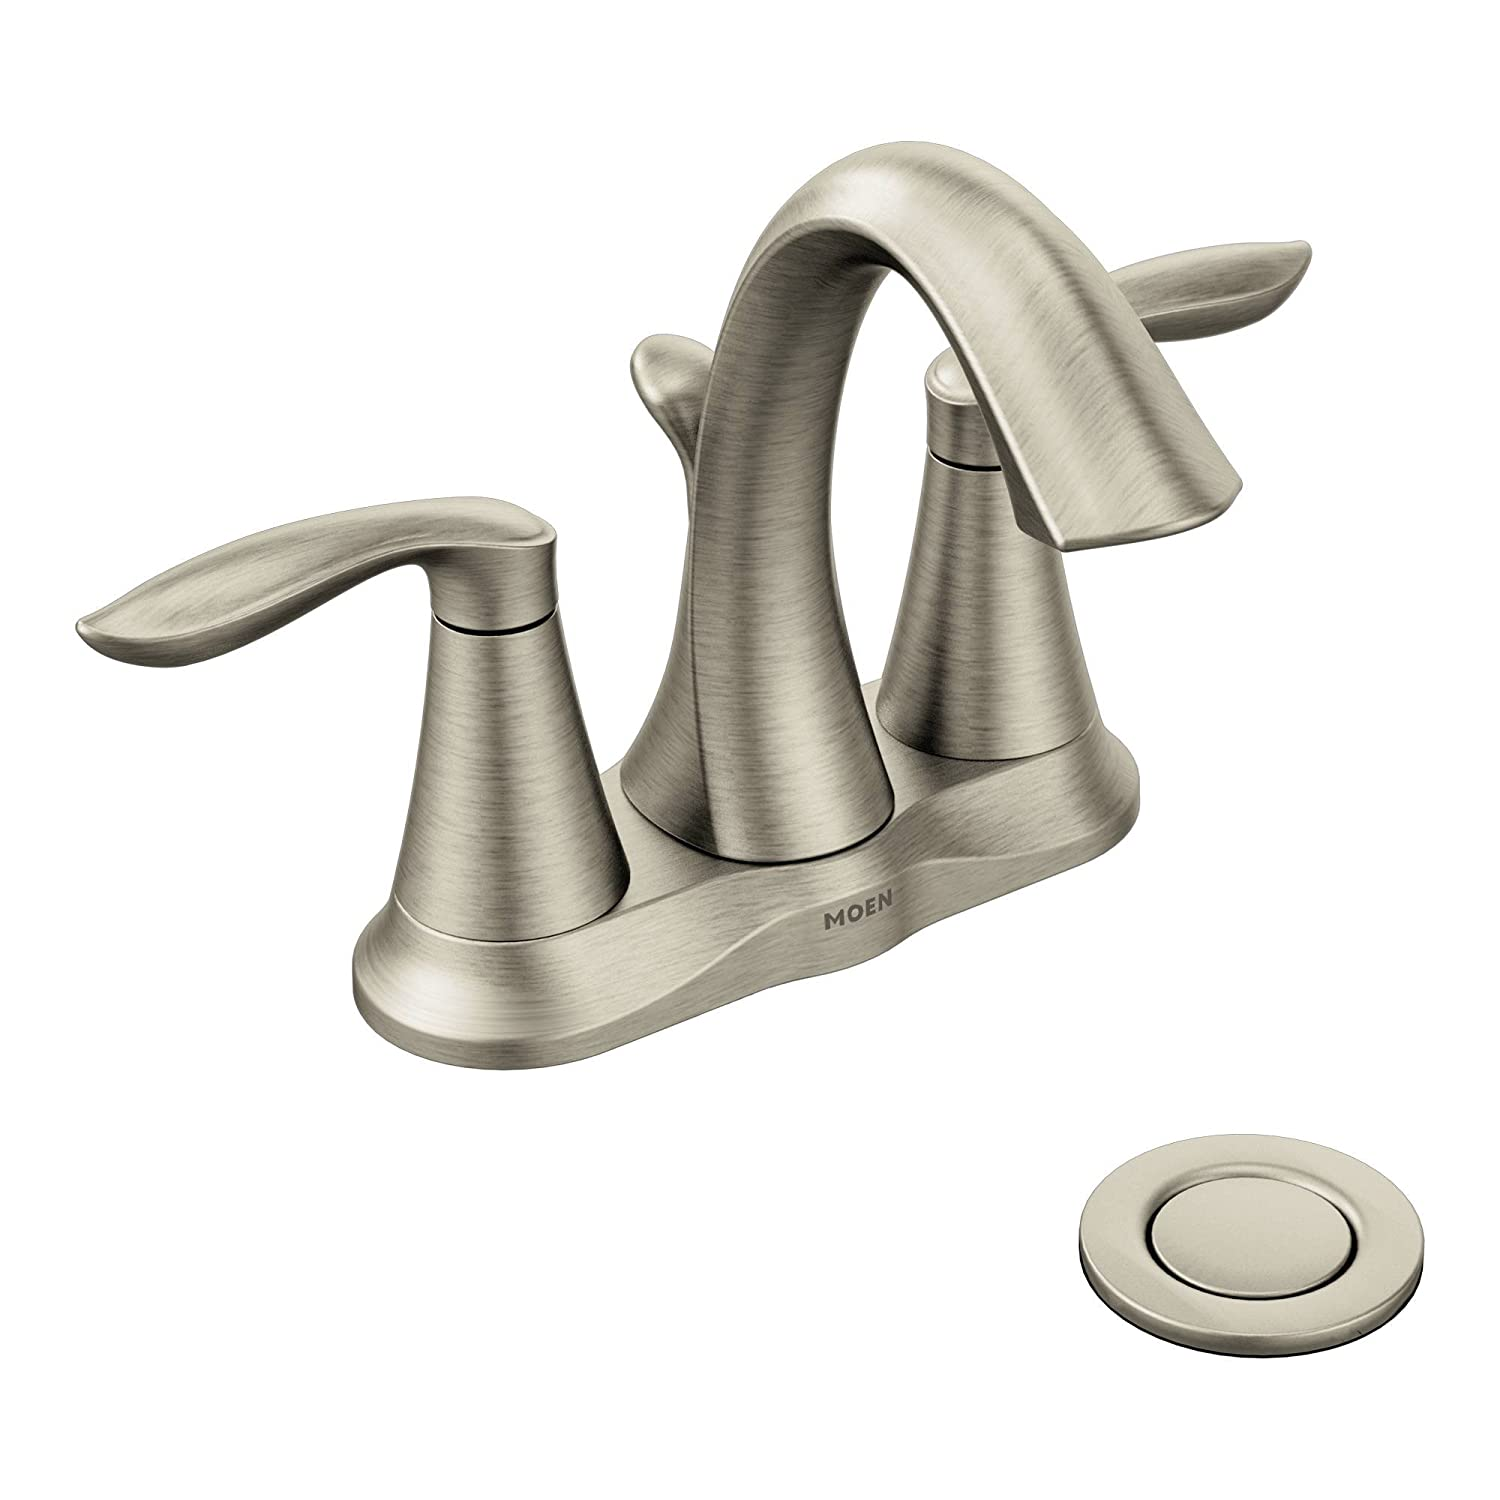 Moen Eva TwoHandle Centerset Bathroom Faucet With Drain Assembly - Replacing bathroom faucet drain